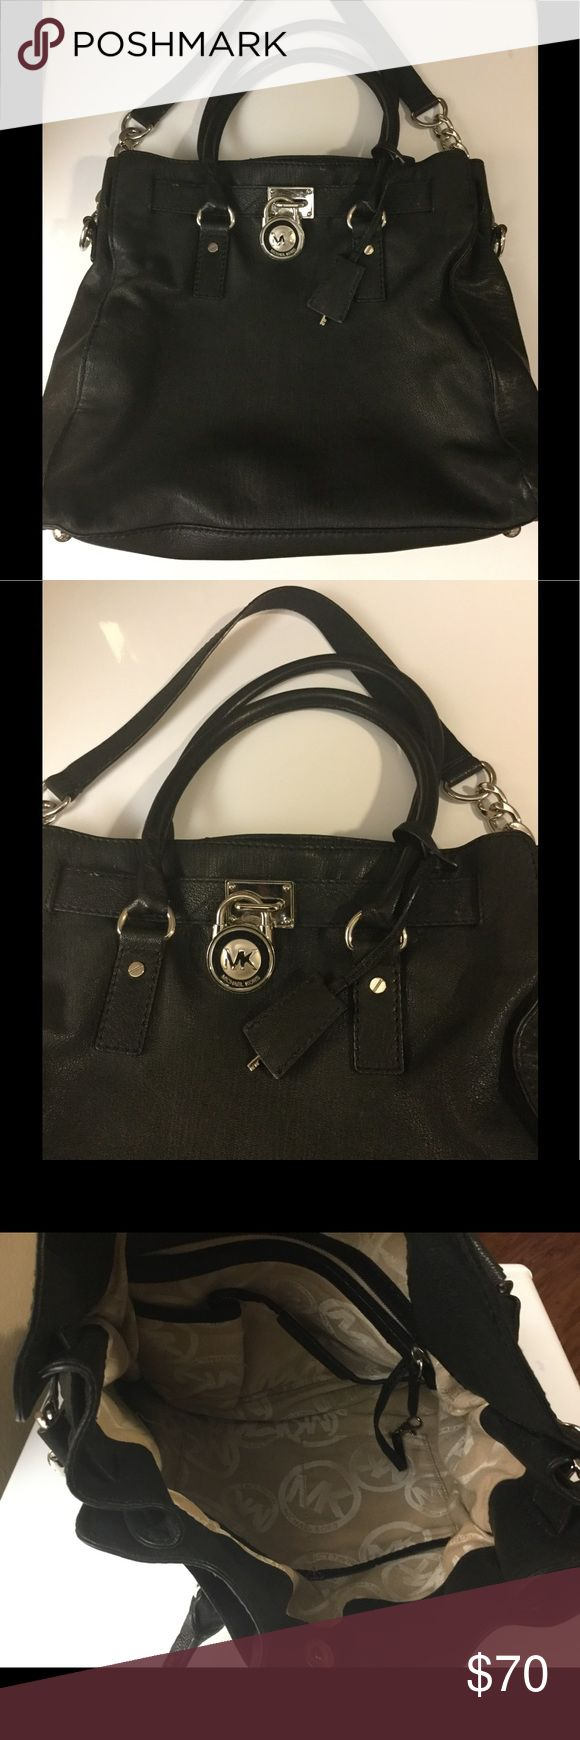 Michael Kors Hamilton bag Pre-loved...Has normal wear and tear...It's in good condition... Michael Kors Bags Shoulder Bags